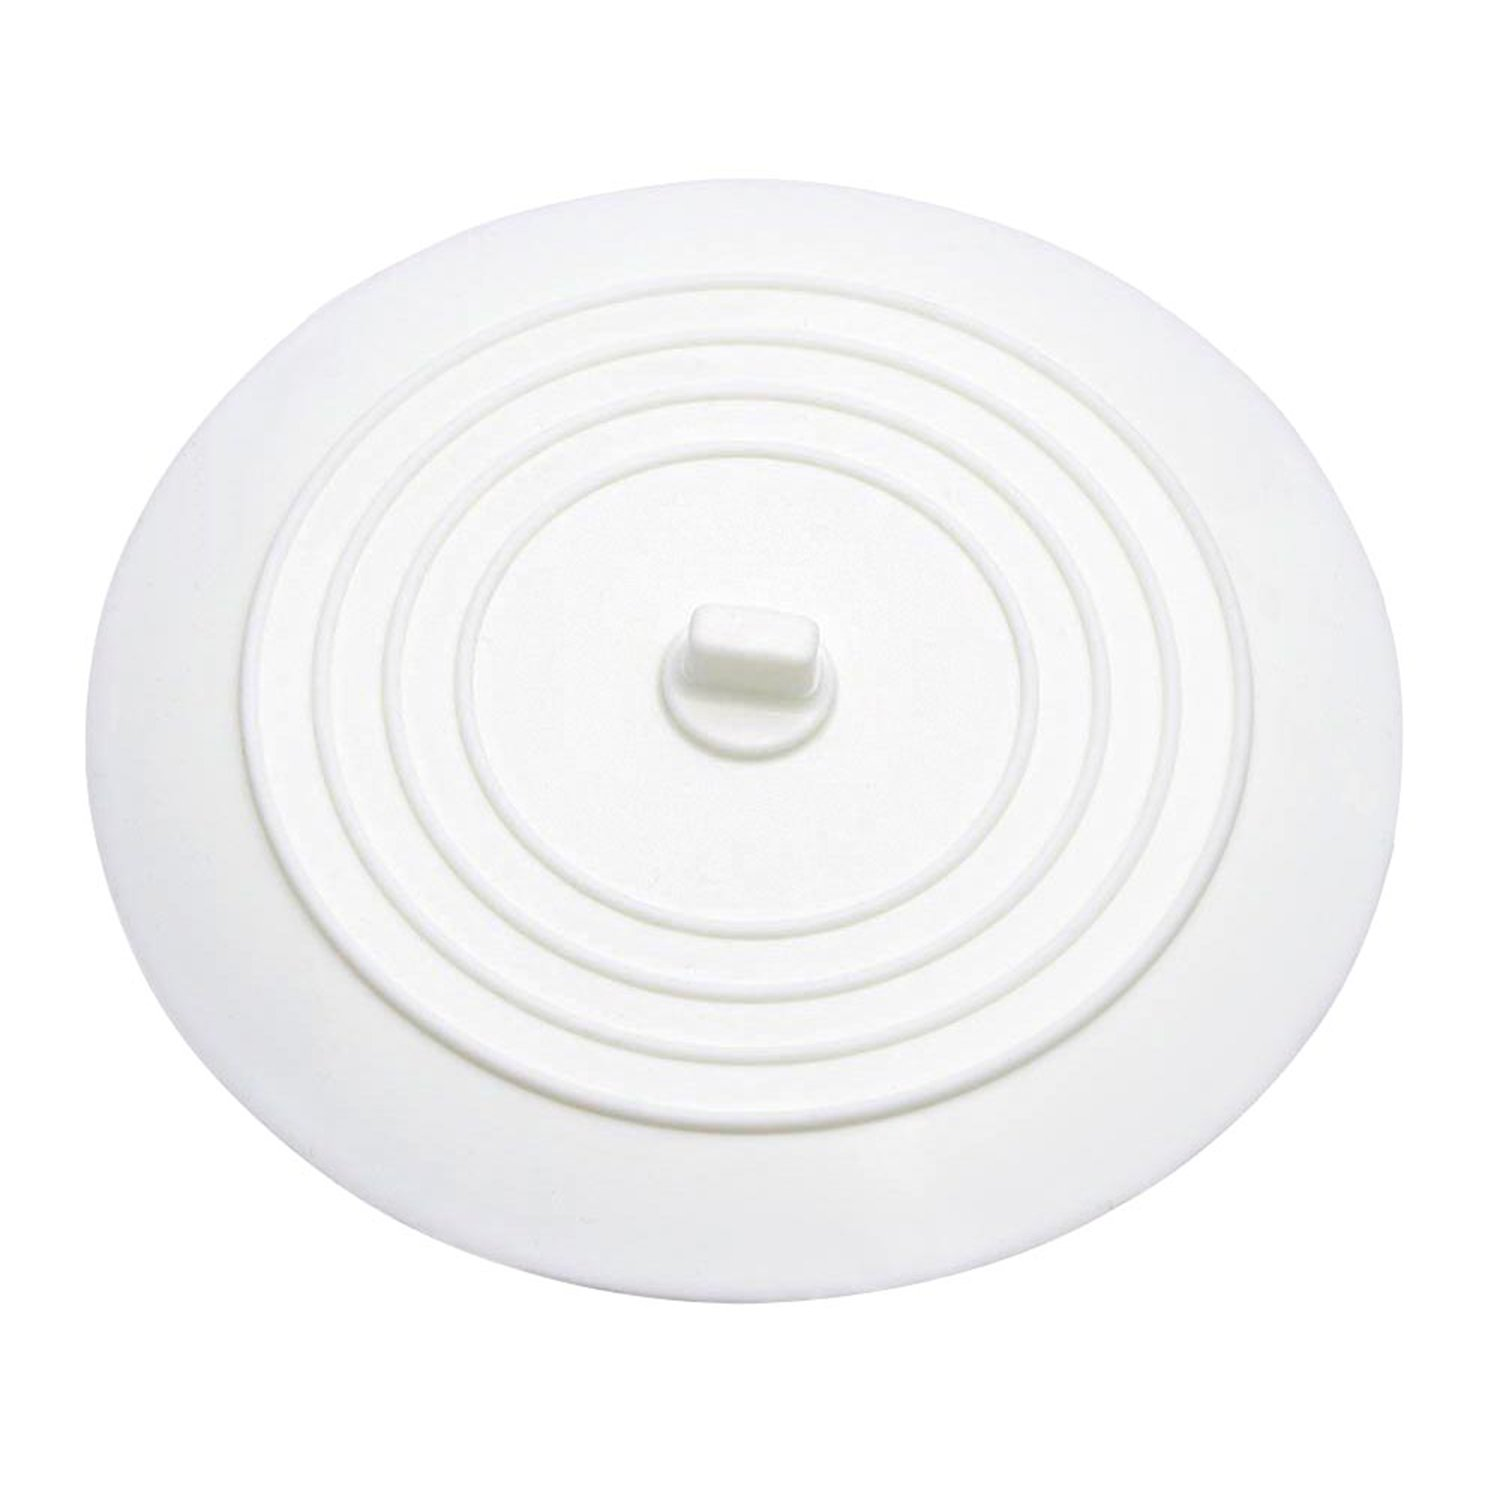 Mudder Silicone Tub Stopper Drain Plug For Kitchens, Bathrooms And  Laundries 6 Inches (White)